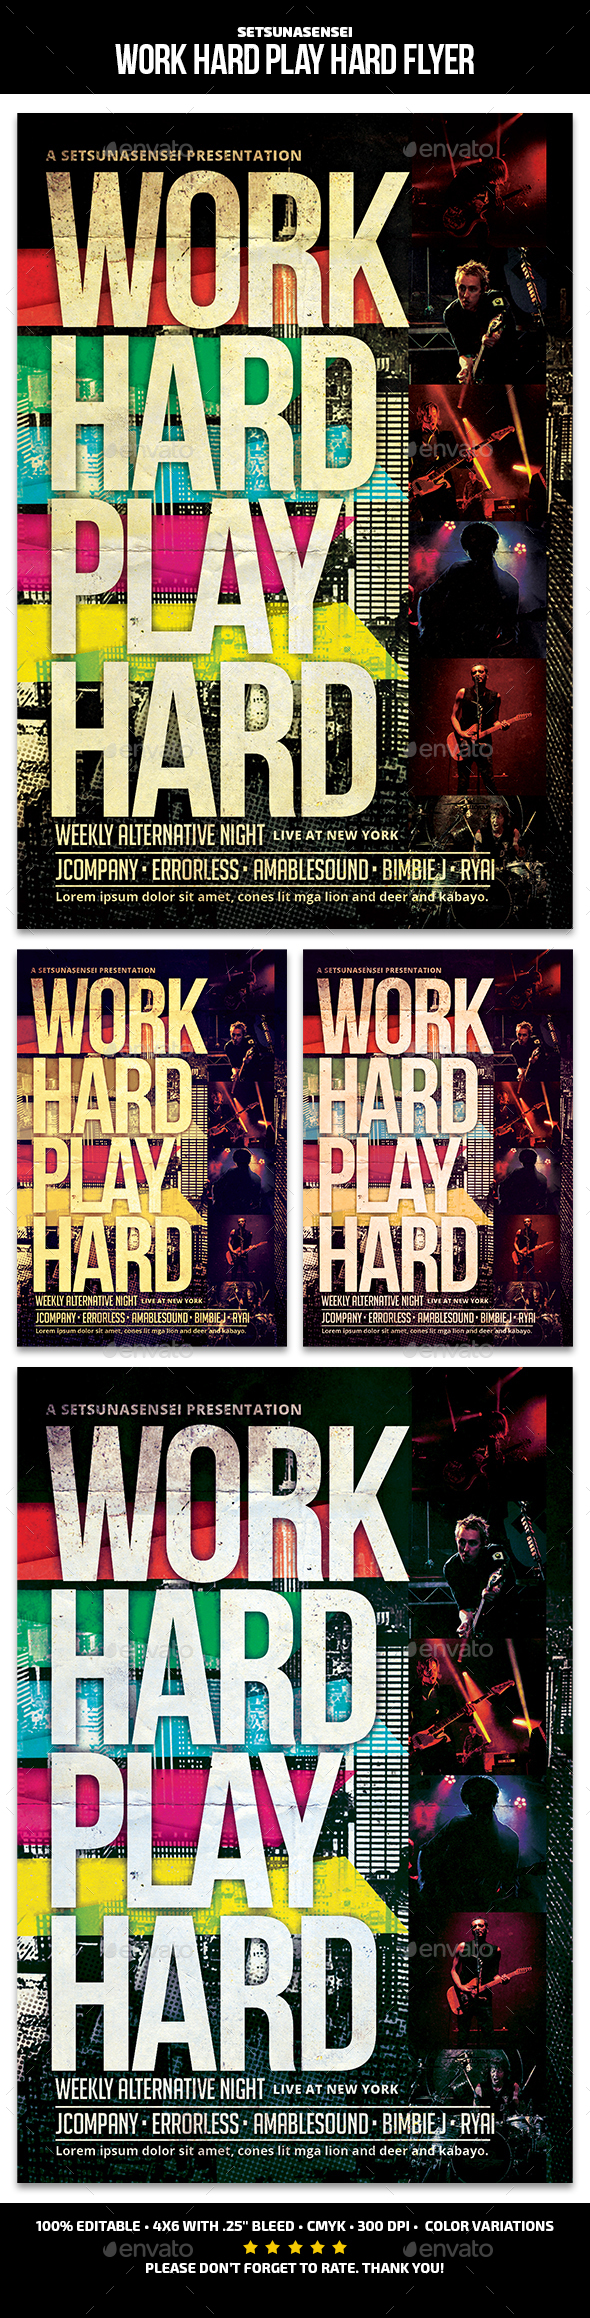 Work Hard Play Hard Flyer - Concerts Events